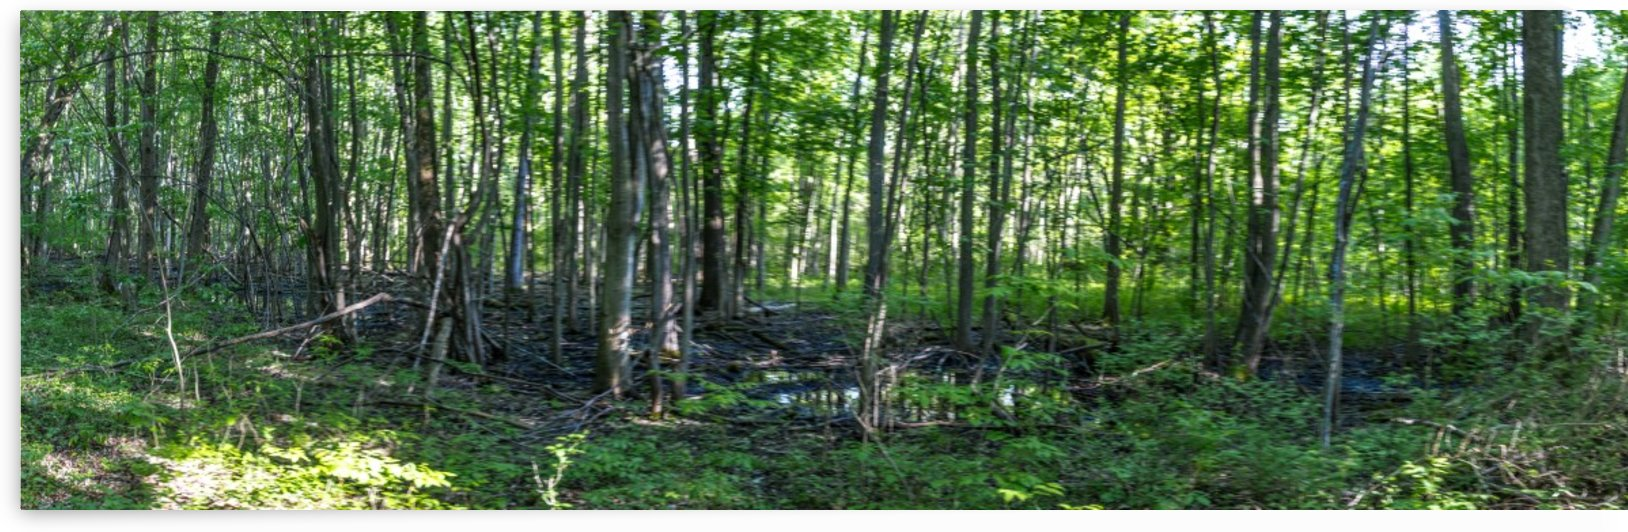 1000 Acre Swamp Panorama 2 by William Norton Photography